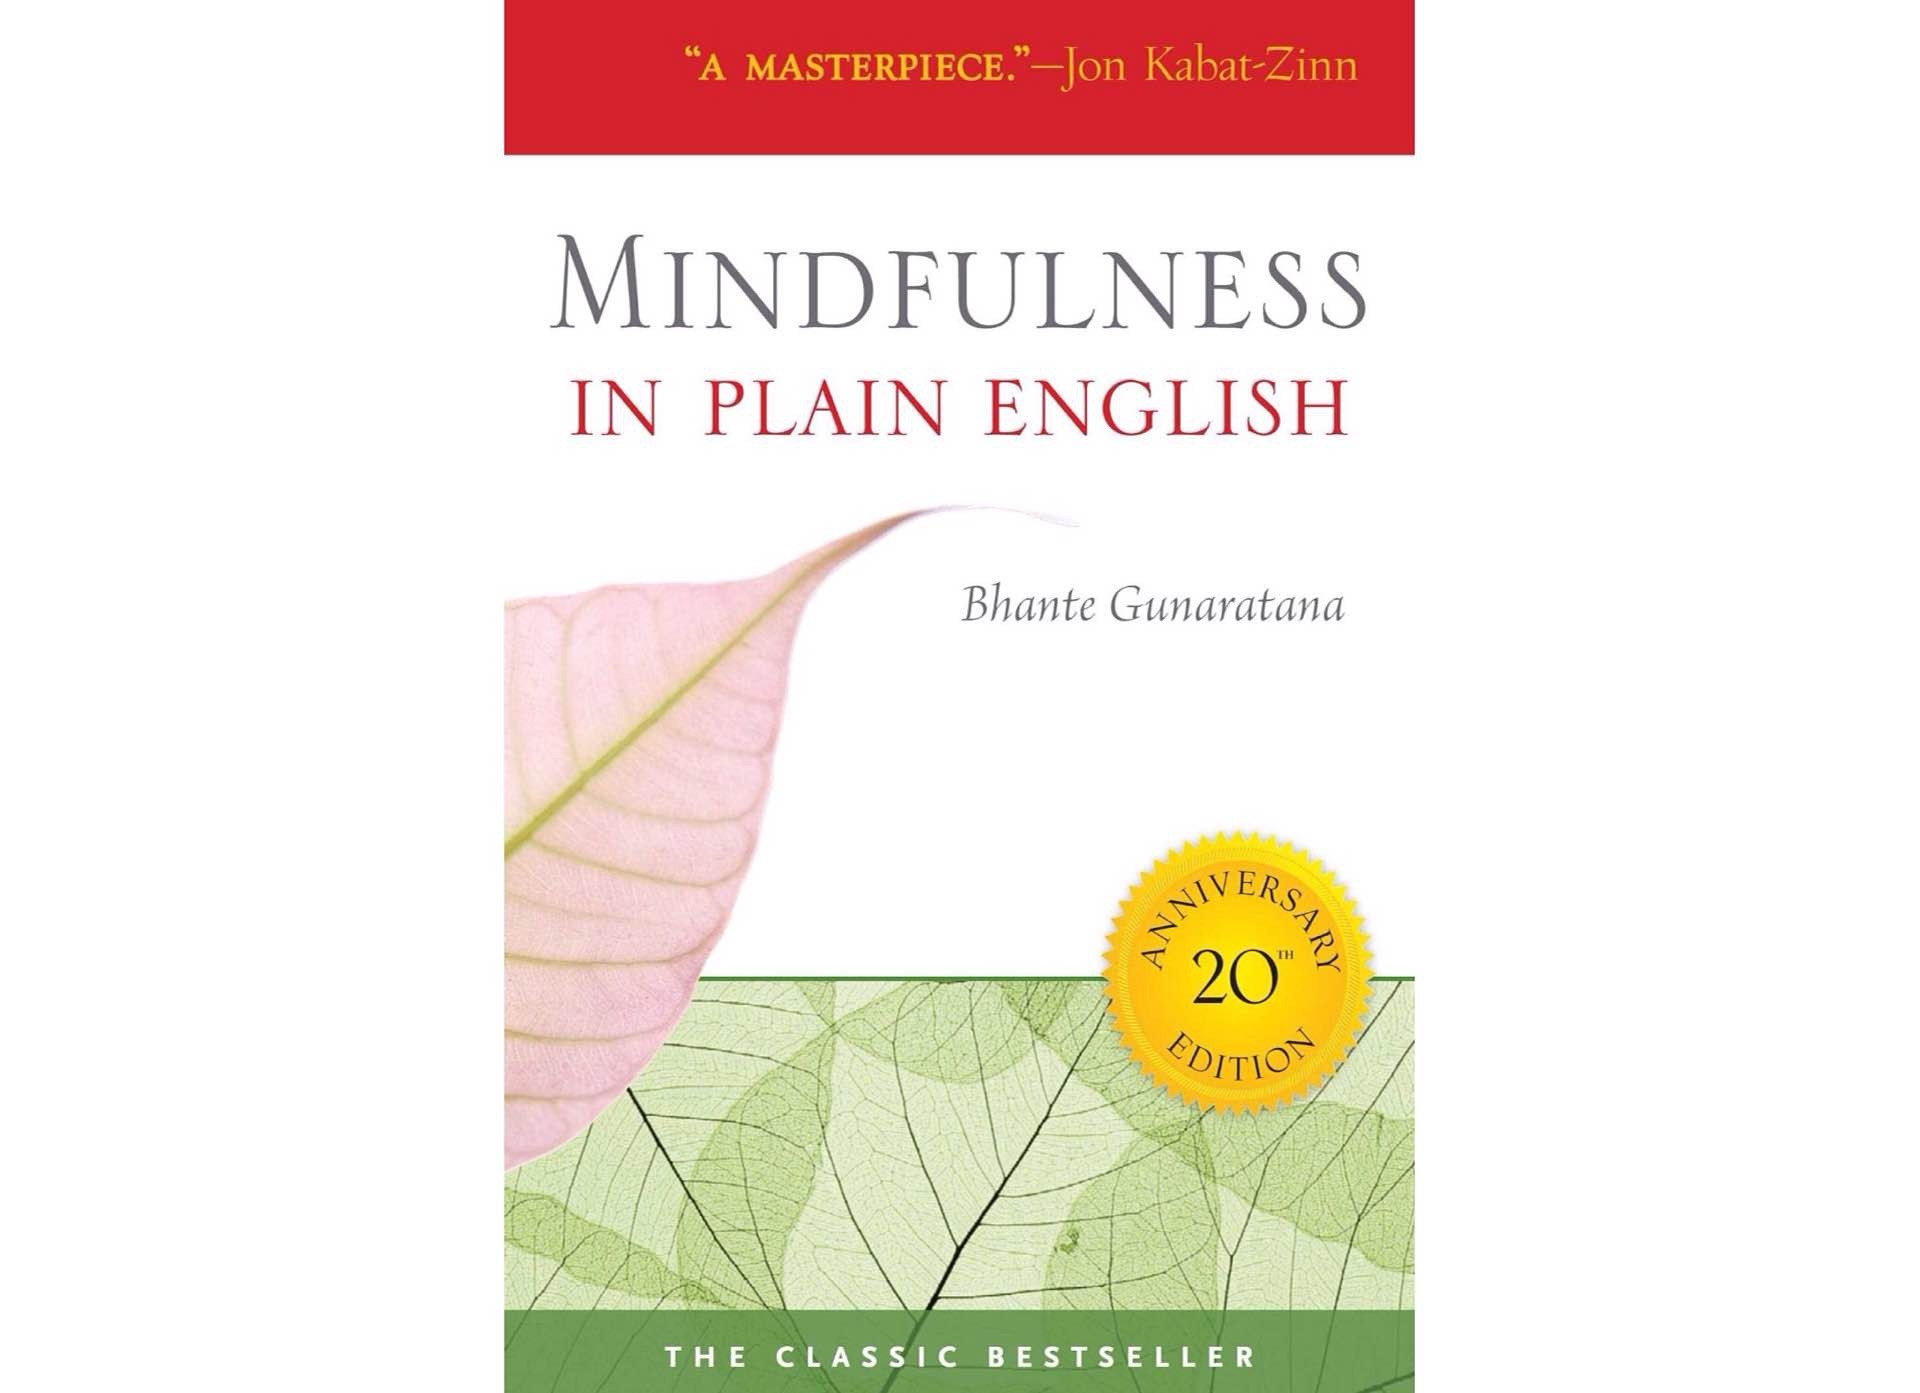 Mindfulness in Plain English by Henepola Gunaratana. ($9–$13, depending on format)